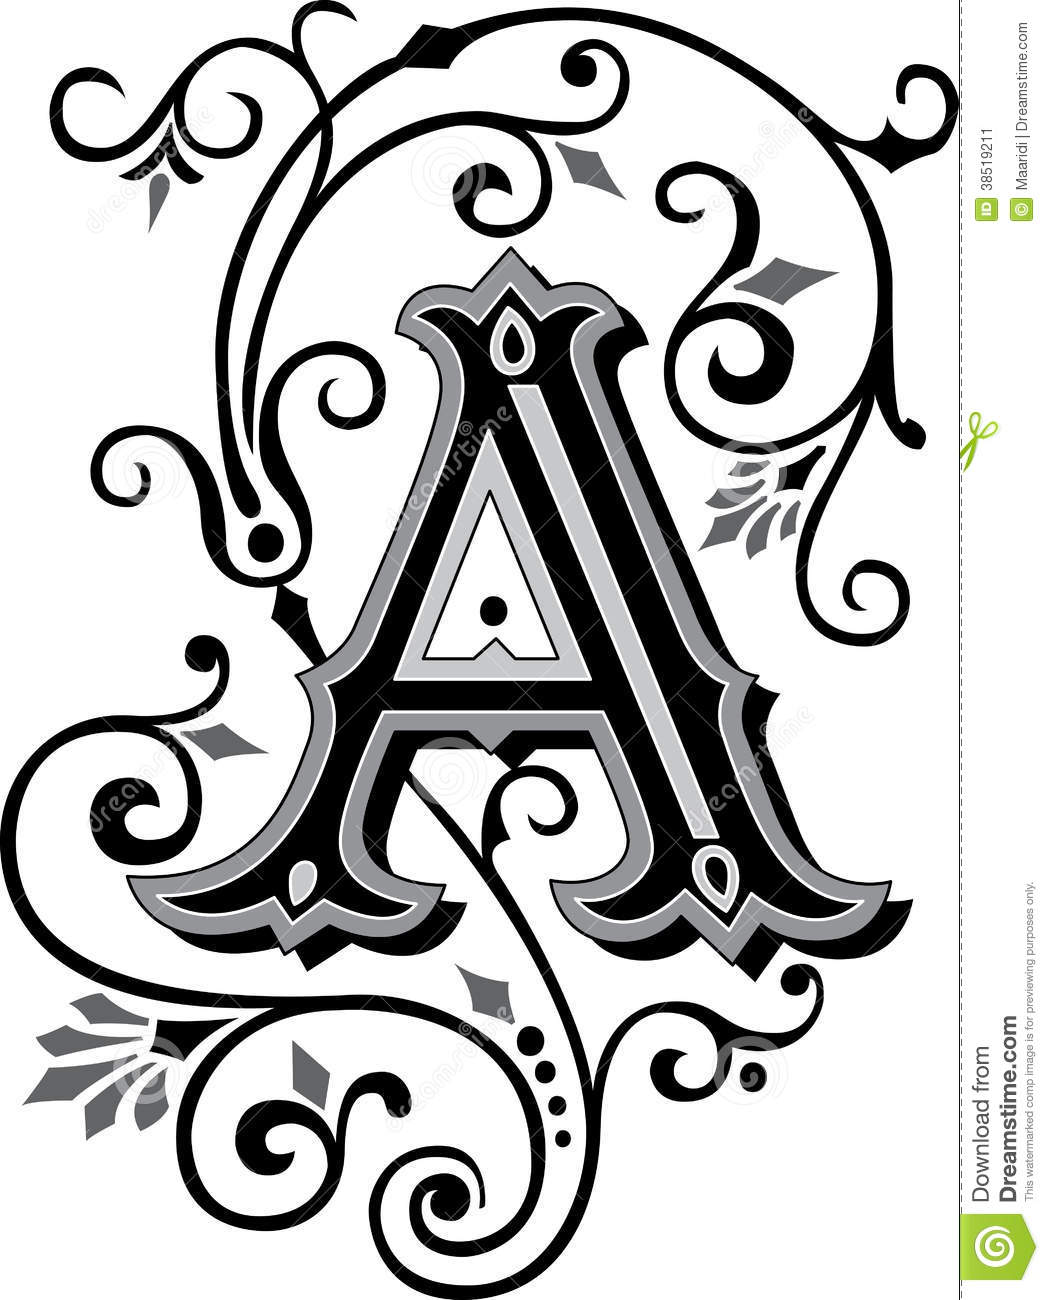 Coloring Pages Of Fancy Alphabet Letters : Fancy letters coloring pages